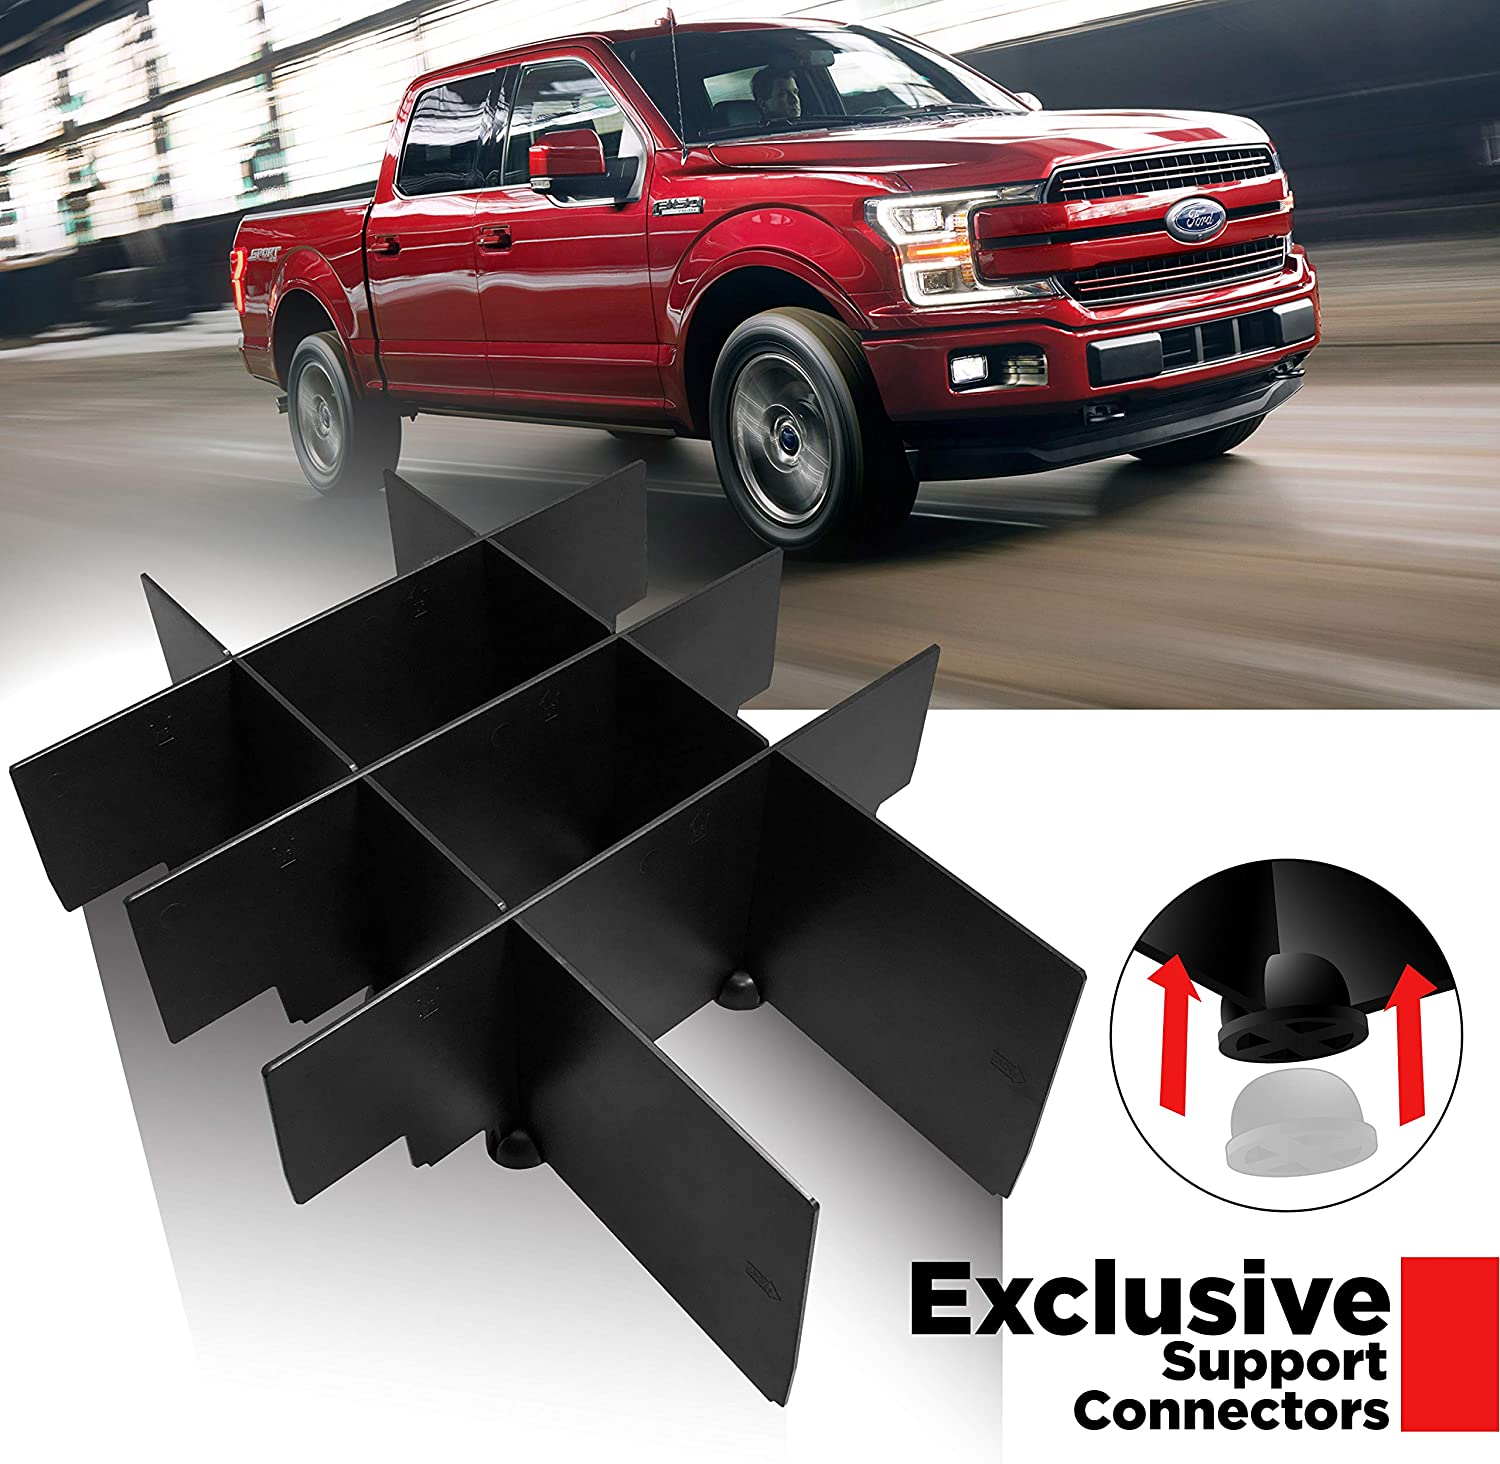 Fits only Vehicle w Bucket Seats Organizer 2015-2020 F150 Seven Sparta Center Console Tray Replacement for 2017-2020 F150 Raptor F250 F350 F450 F550 2018-2020 Expedition